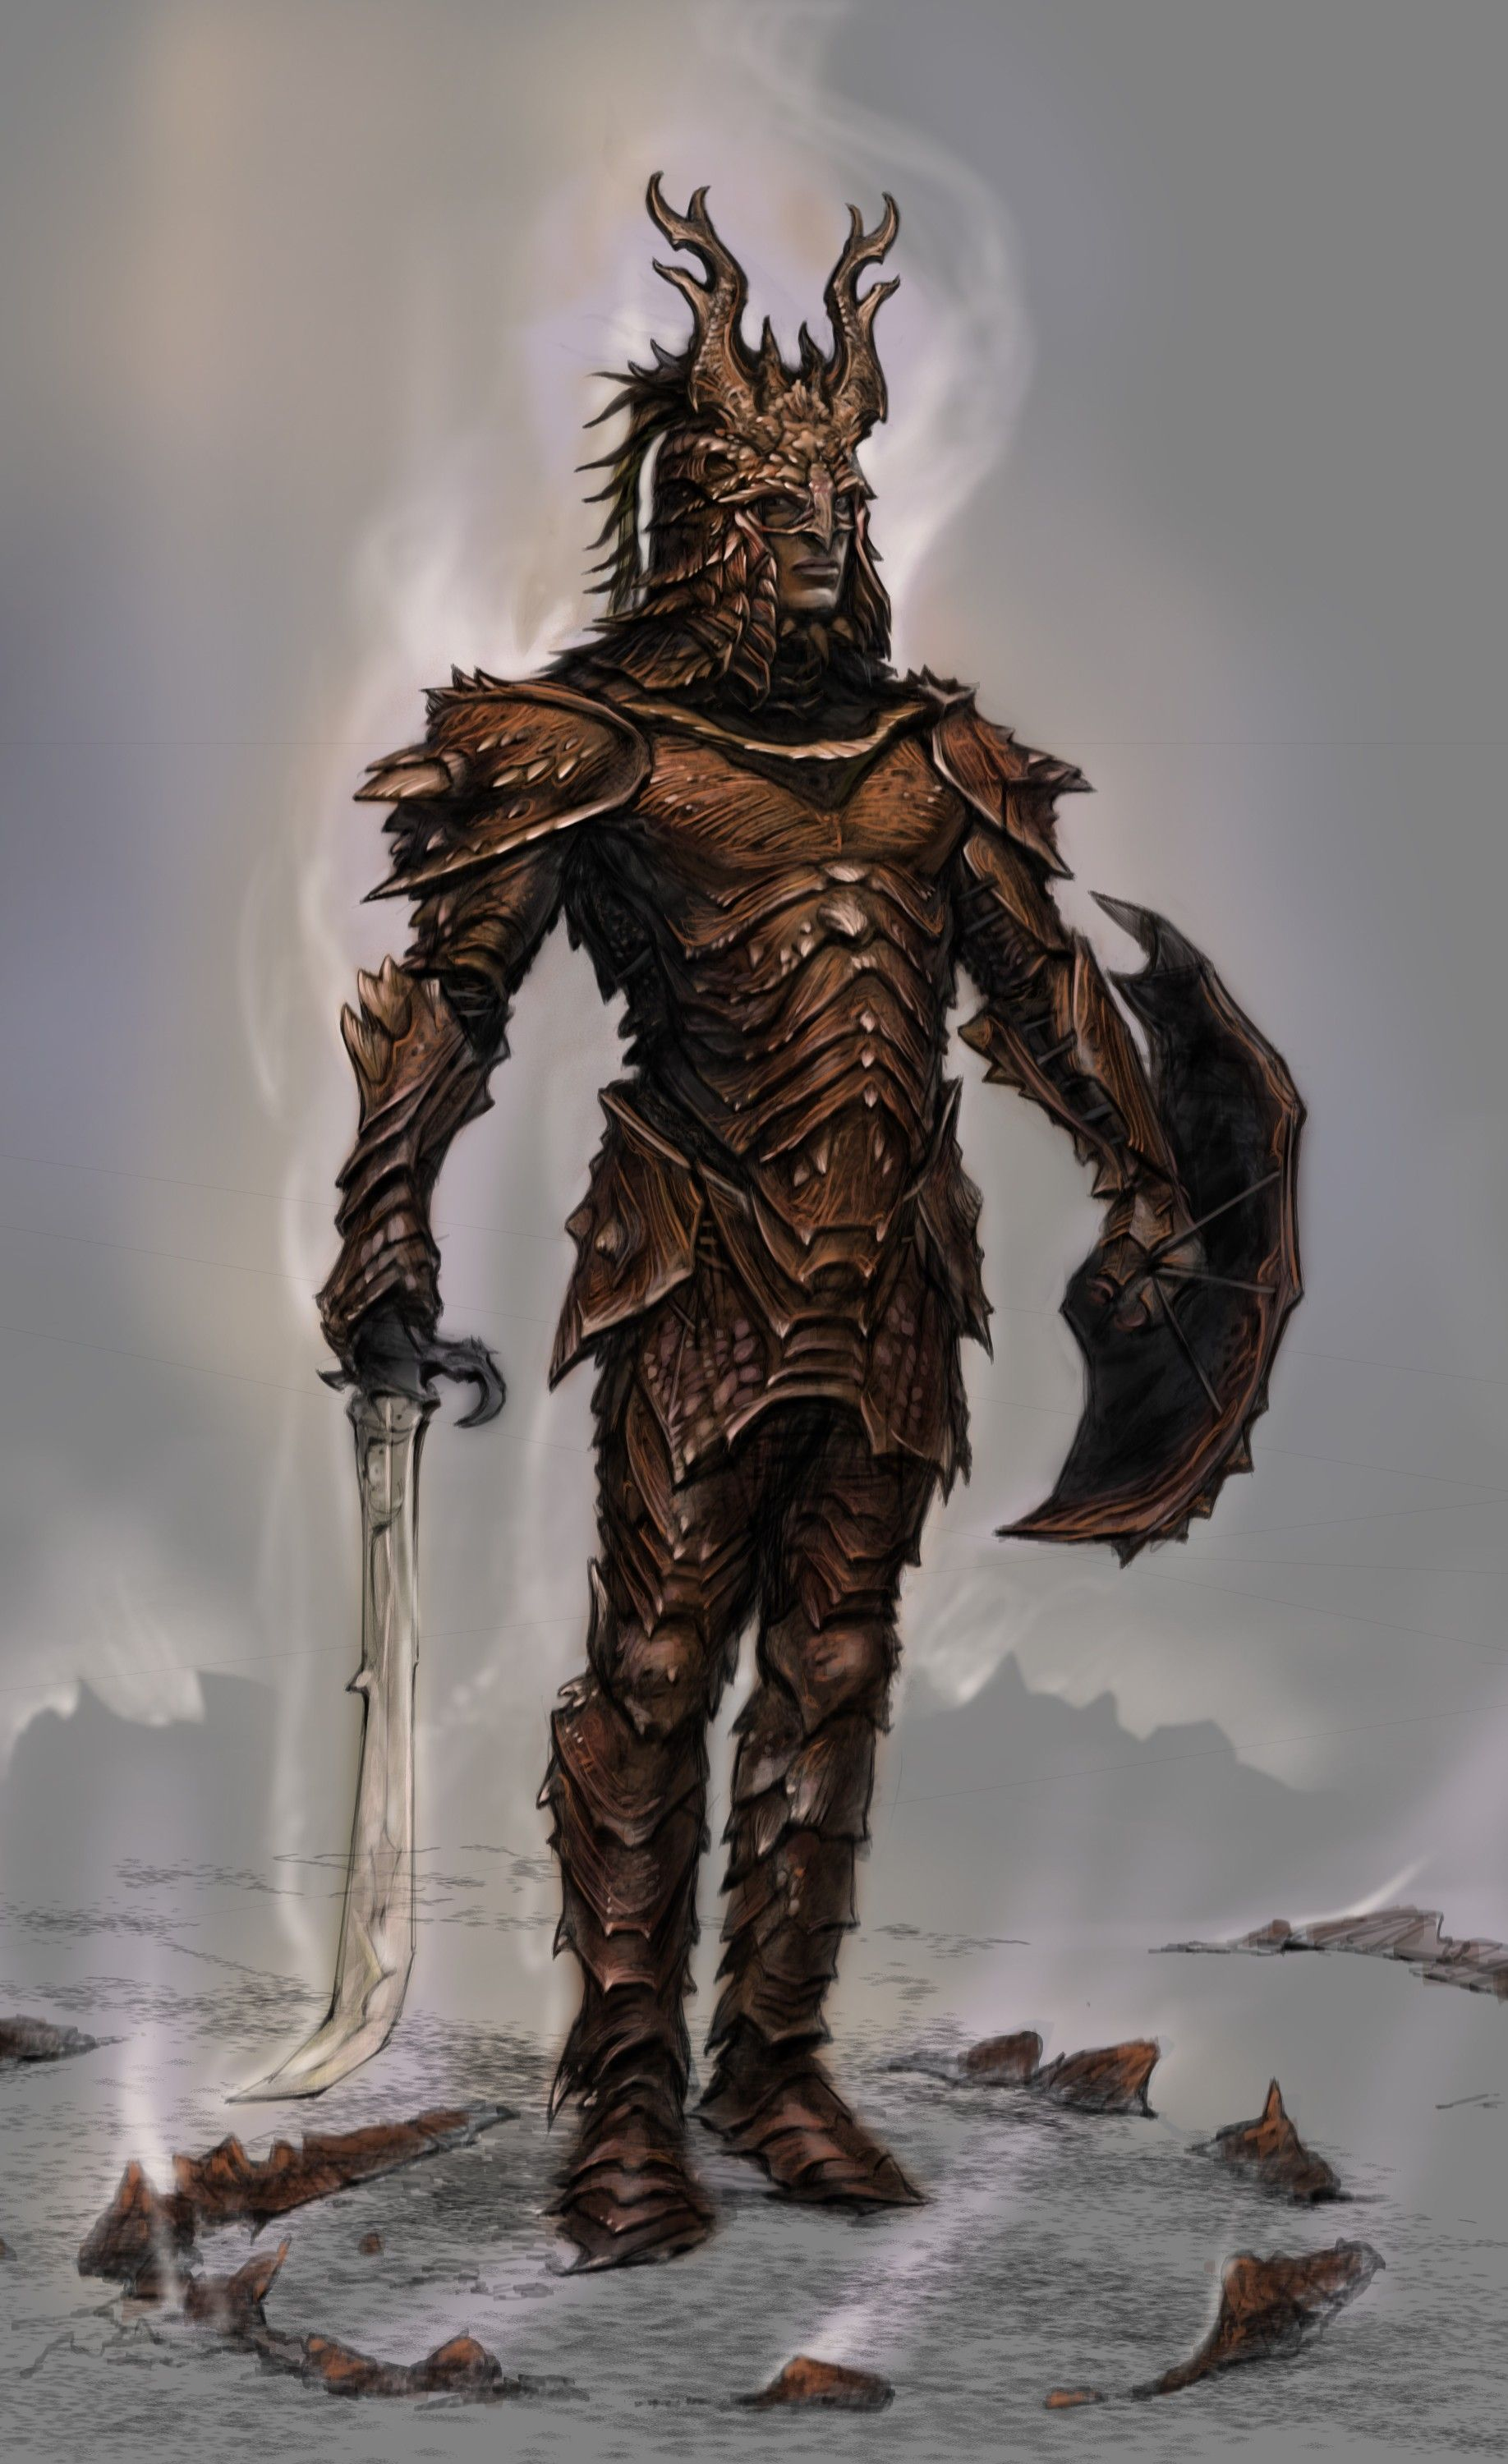 Dragon Armor Skyrim Concept Art Dragon Armor Concept Art Dragon armors come in light dragonscale armor and heavy dragonplate armor varieties. dragon armor skyrim concept art